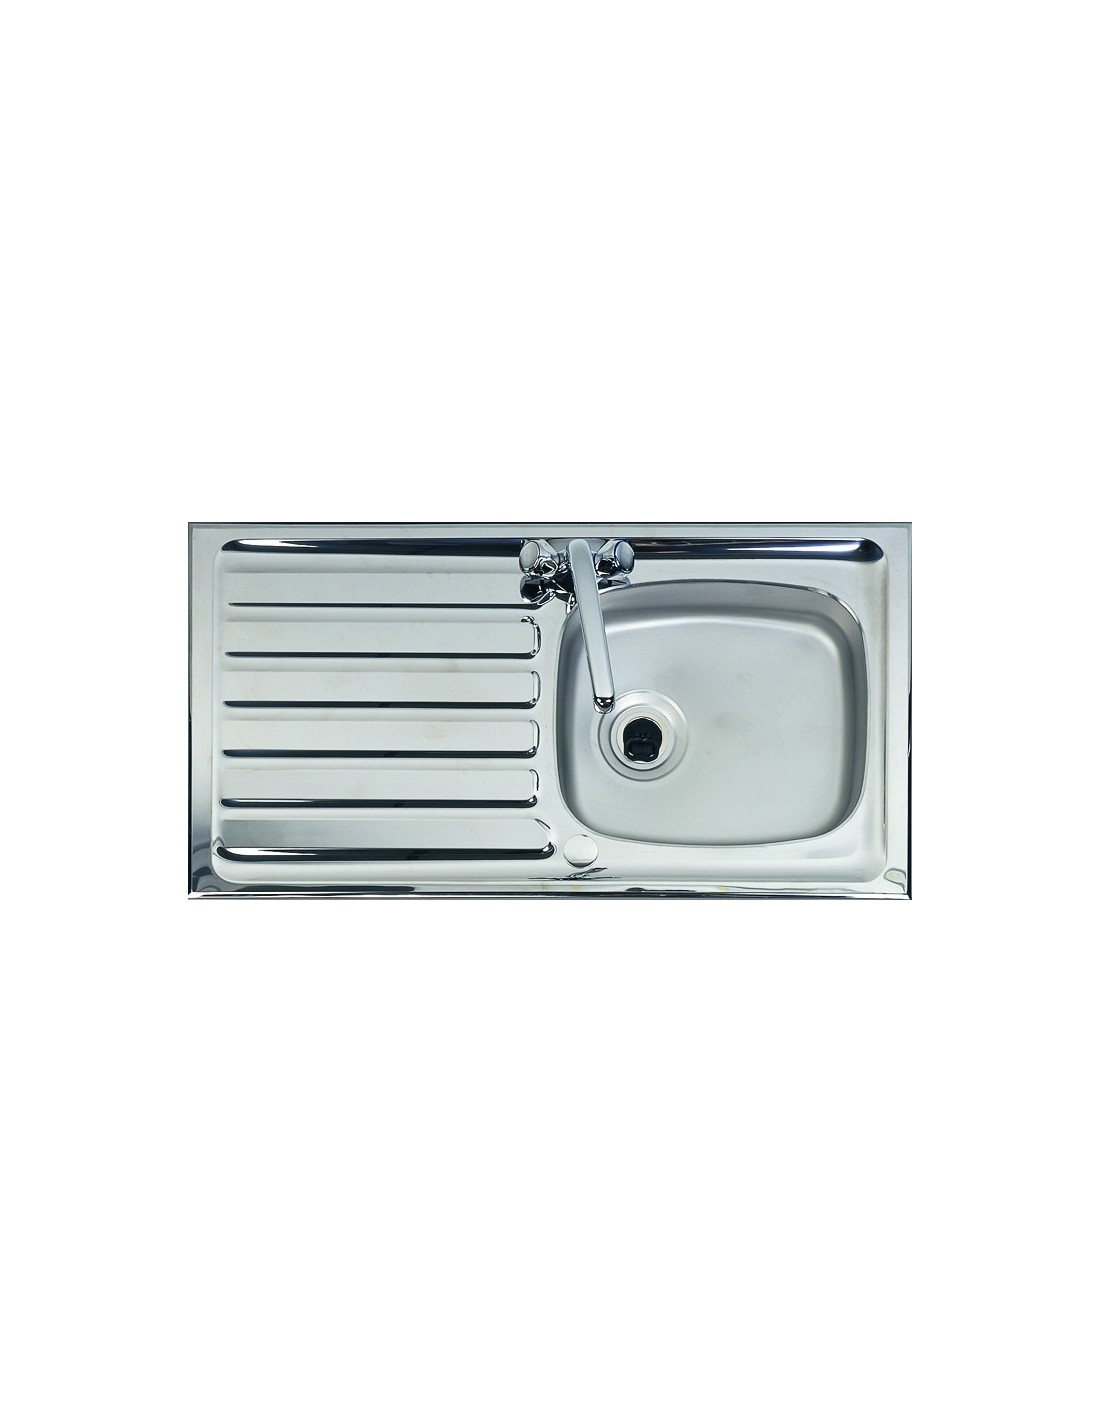 Shallow Stainless Steel Sink : ... Sink, Ideal For Disabled & Wheelchair users, Stainless Steel 1.0 Bowl